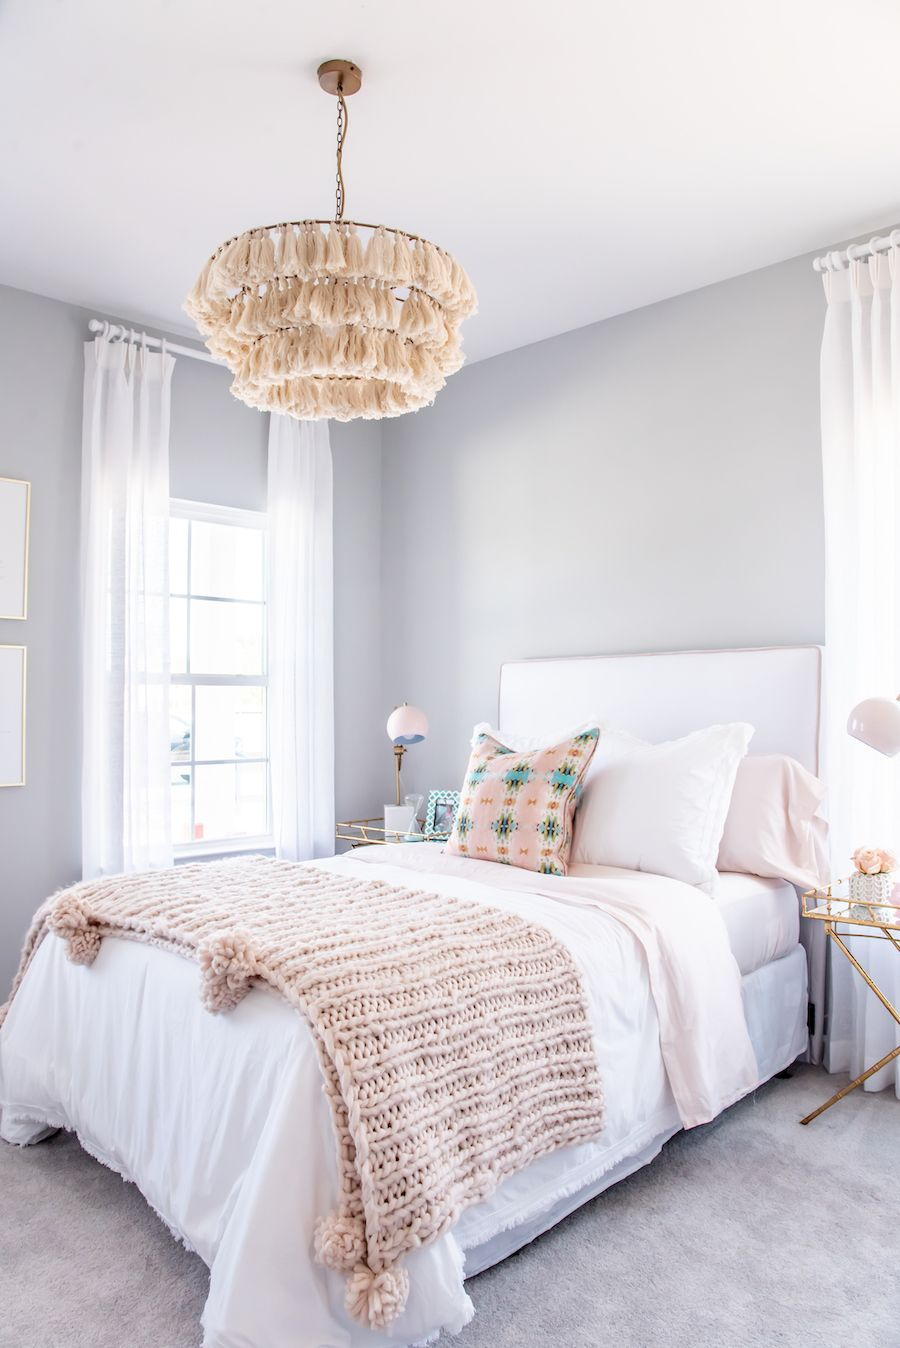 The Secret to Making Your Home Photoshoot Worthy, According to an Interiors Photographer